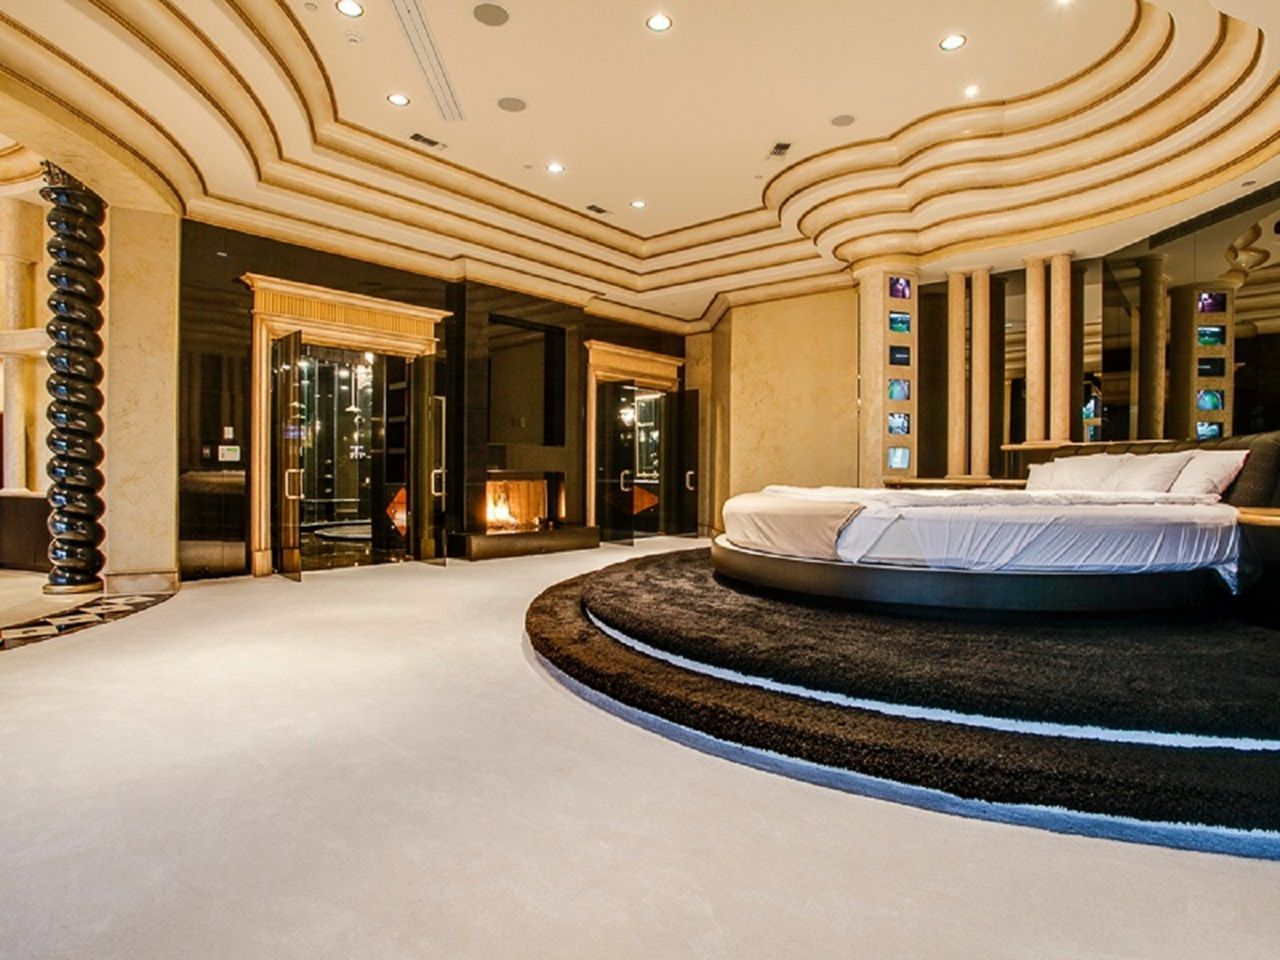 Extraordinary 35 Luxurious Master Bedroom Designs For Life Like A